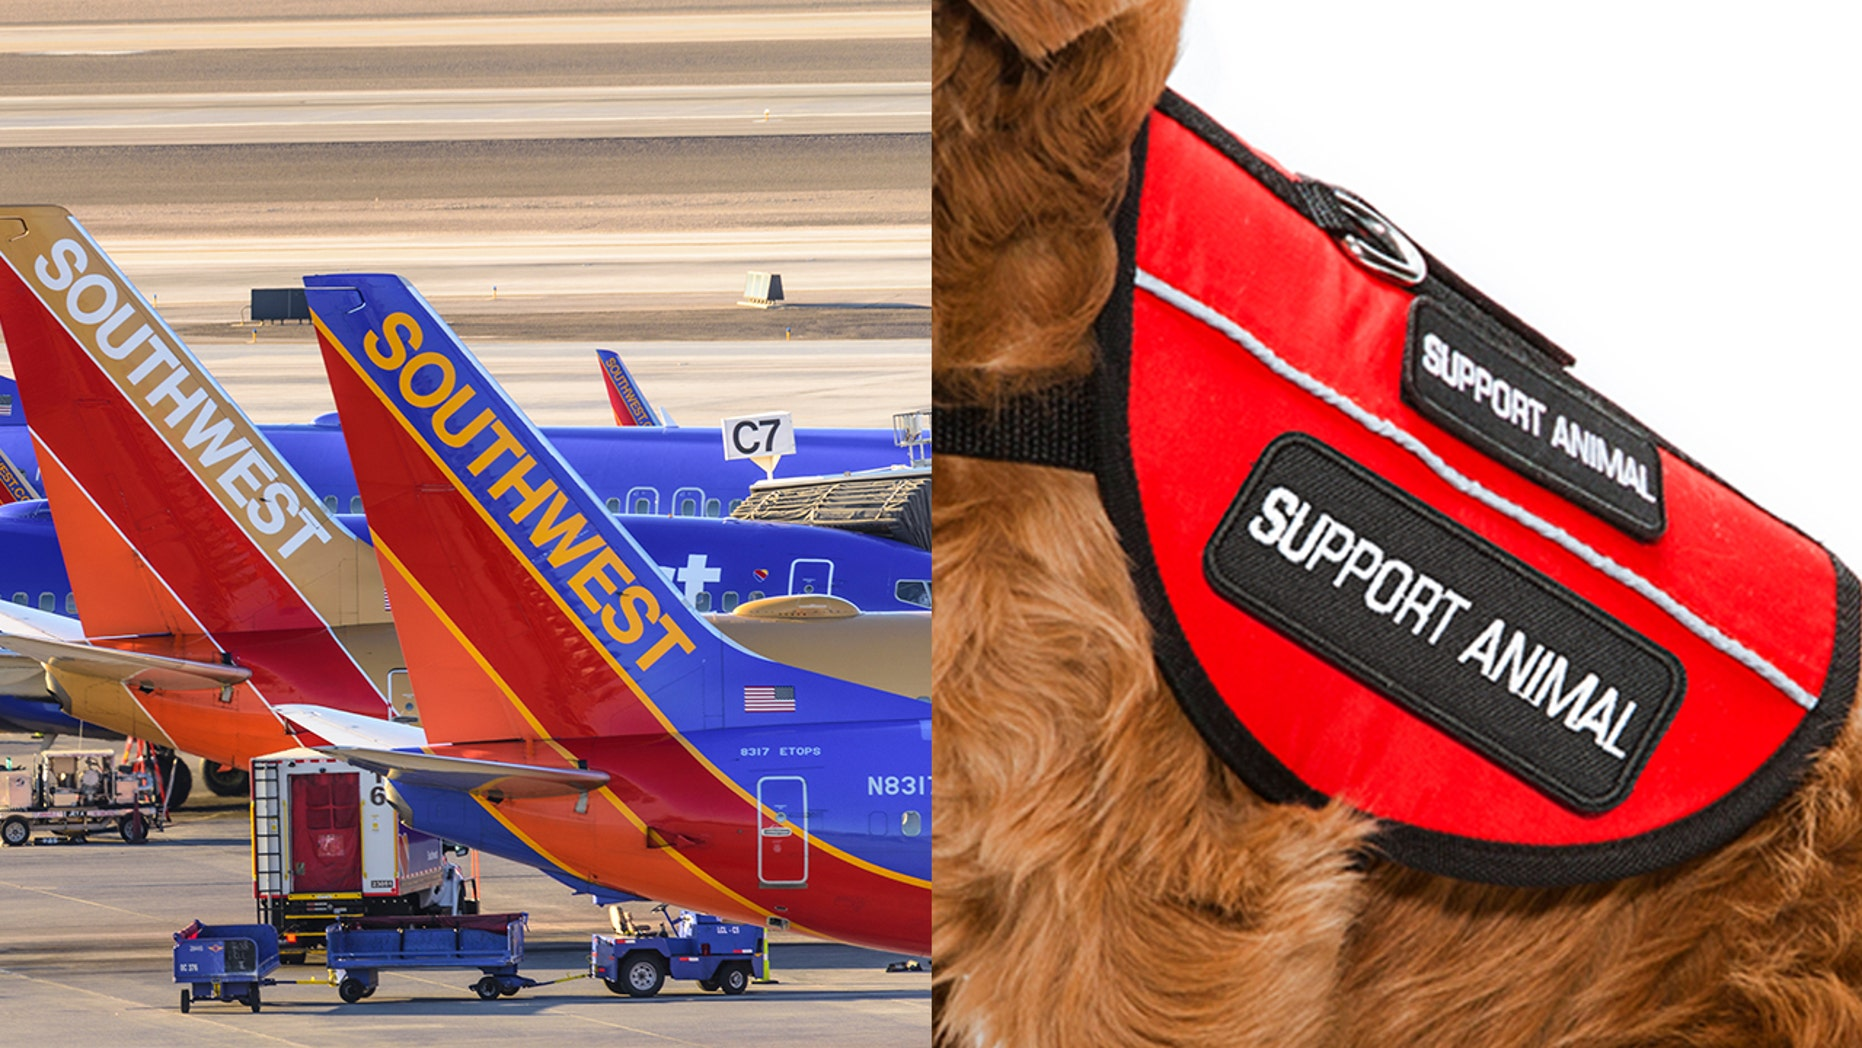 An emotional support dog injured a child on a Southwest plane, scraping its teeth against the child's forehead.